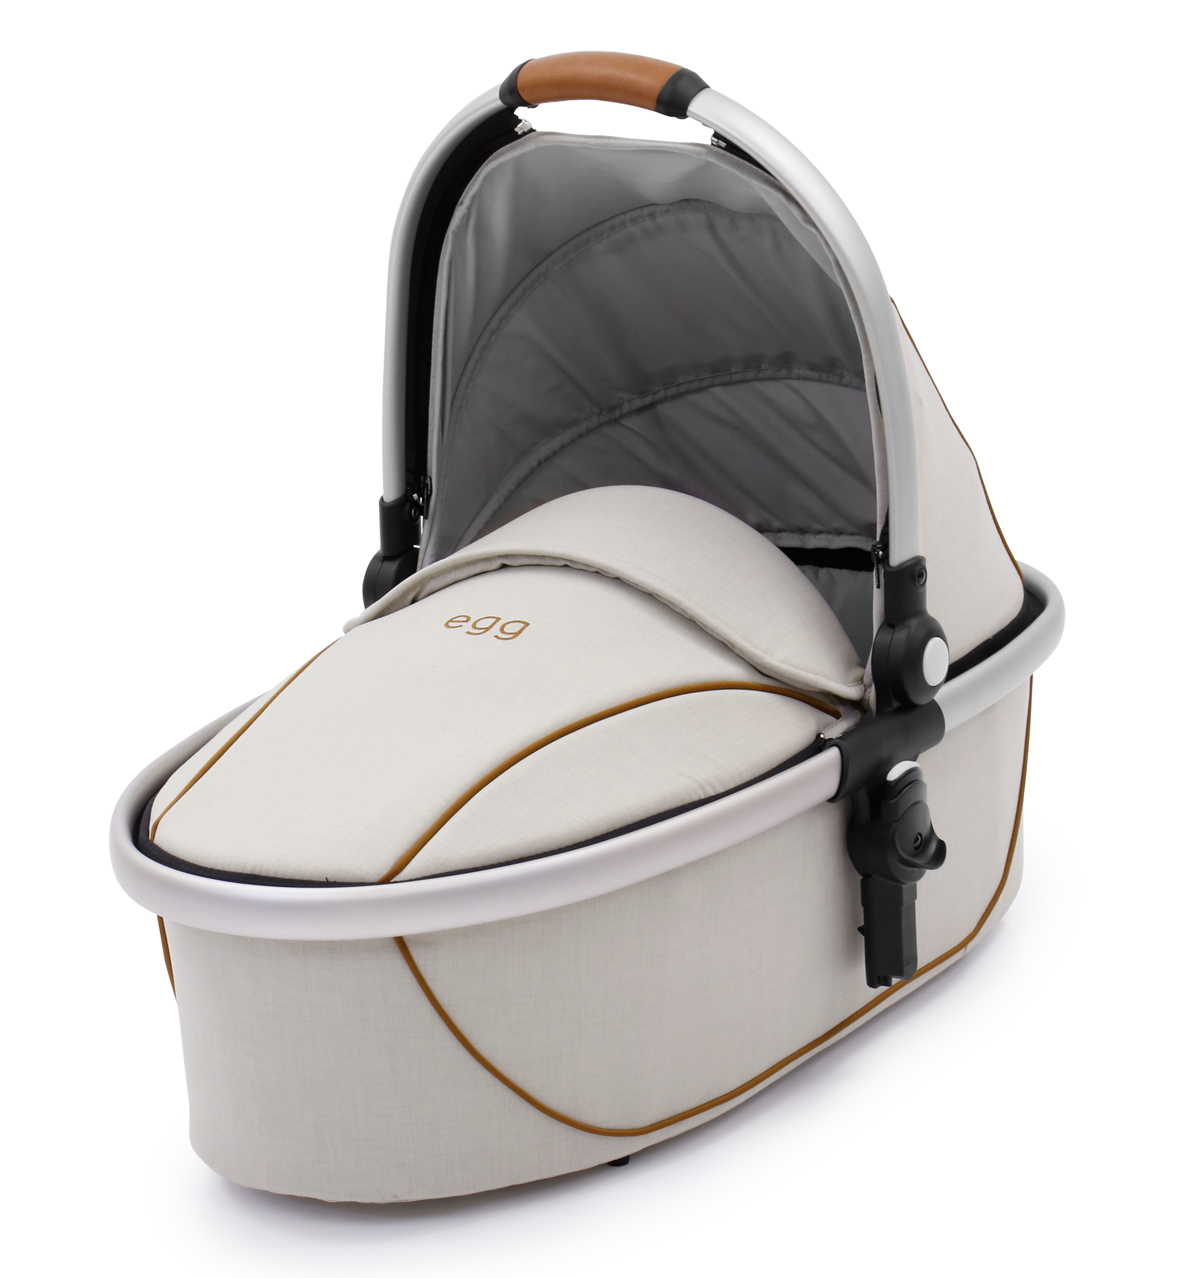 Egg Carrycot Prosecco Brushed Silver Frame